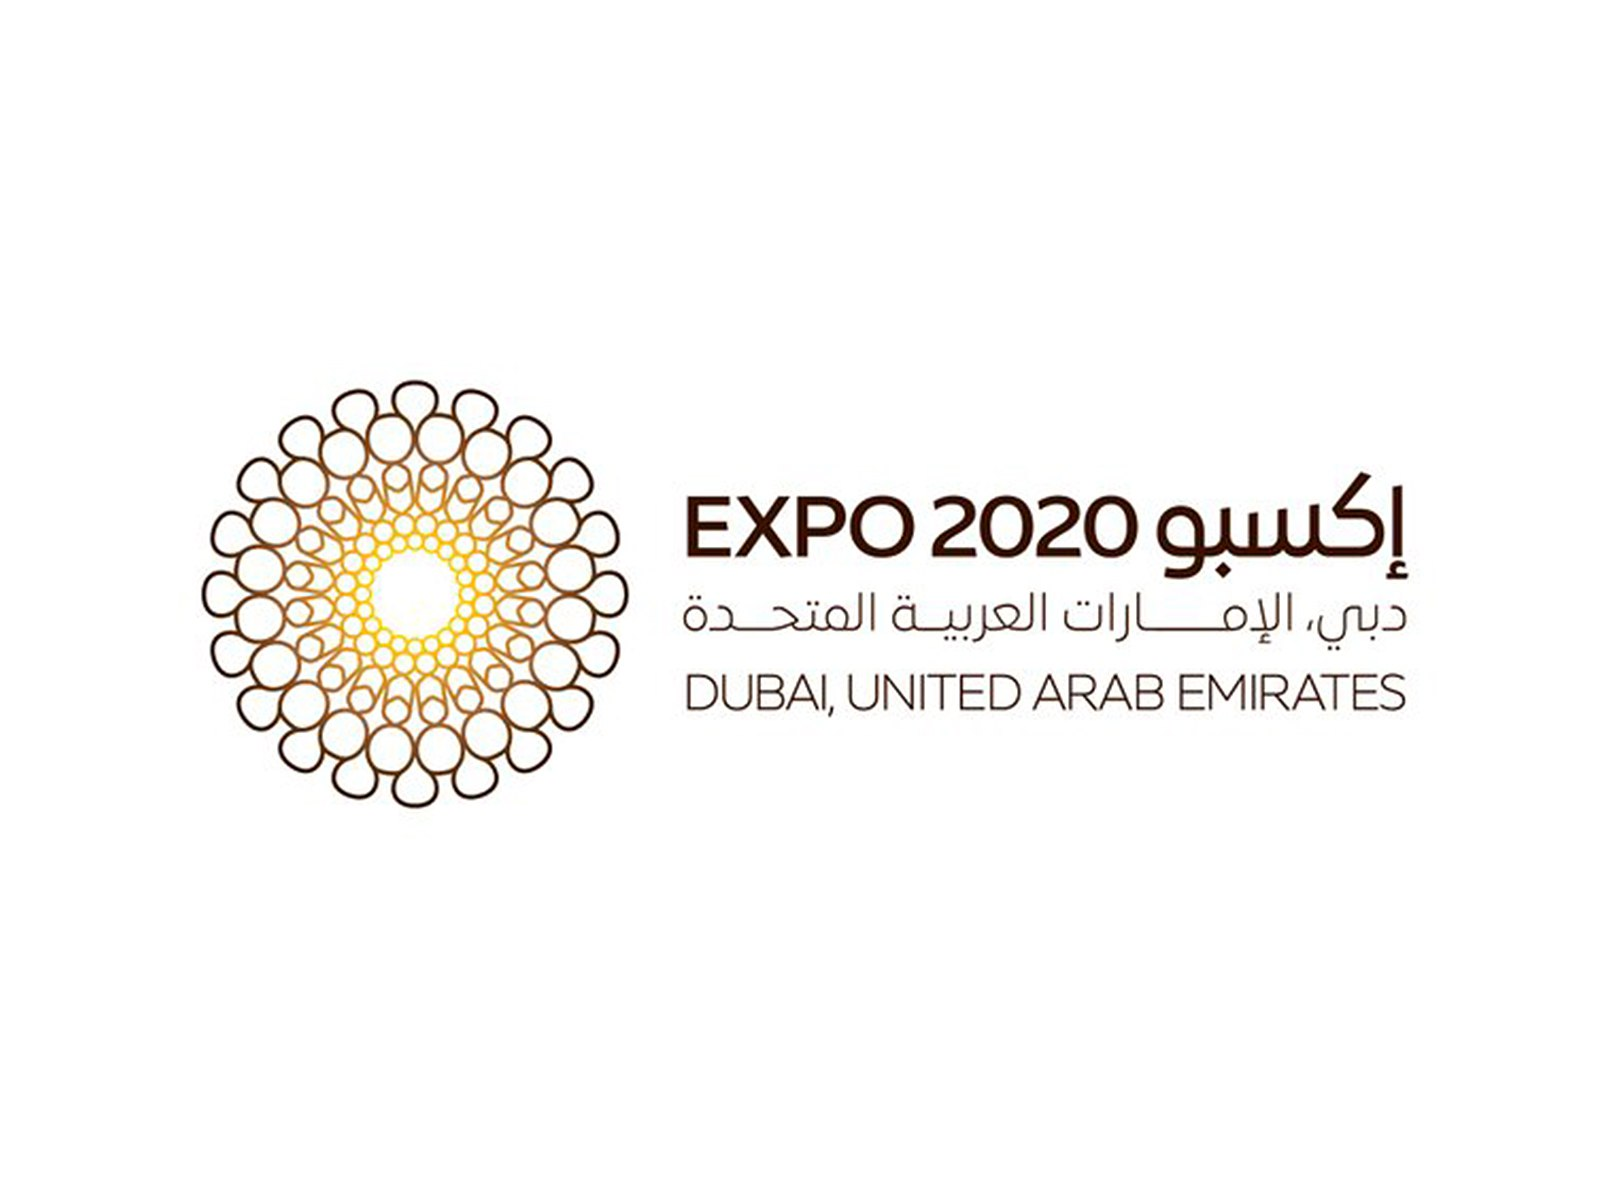 Expo 2020 organizers and steering committee participants explore postponement of the event by one year in view of COVID-19 impact worldwide